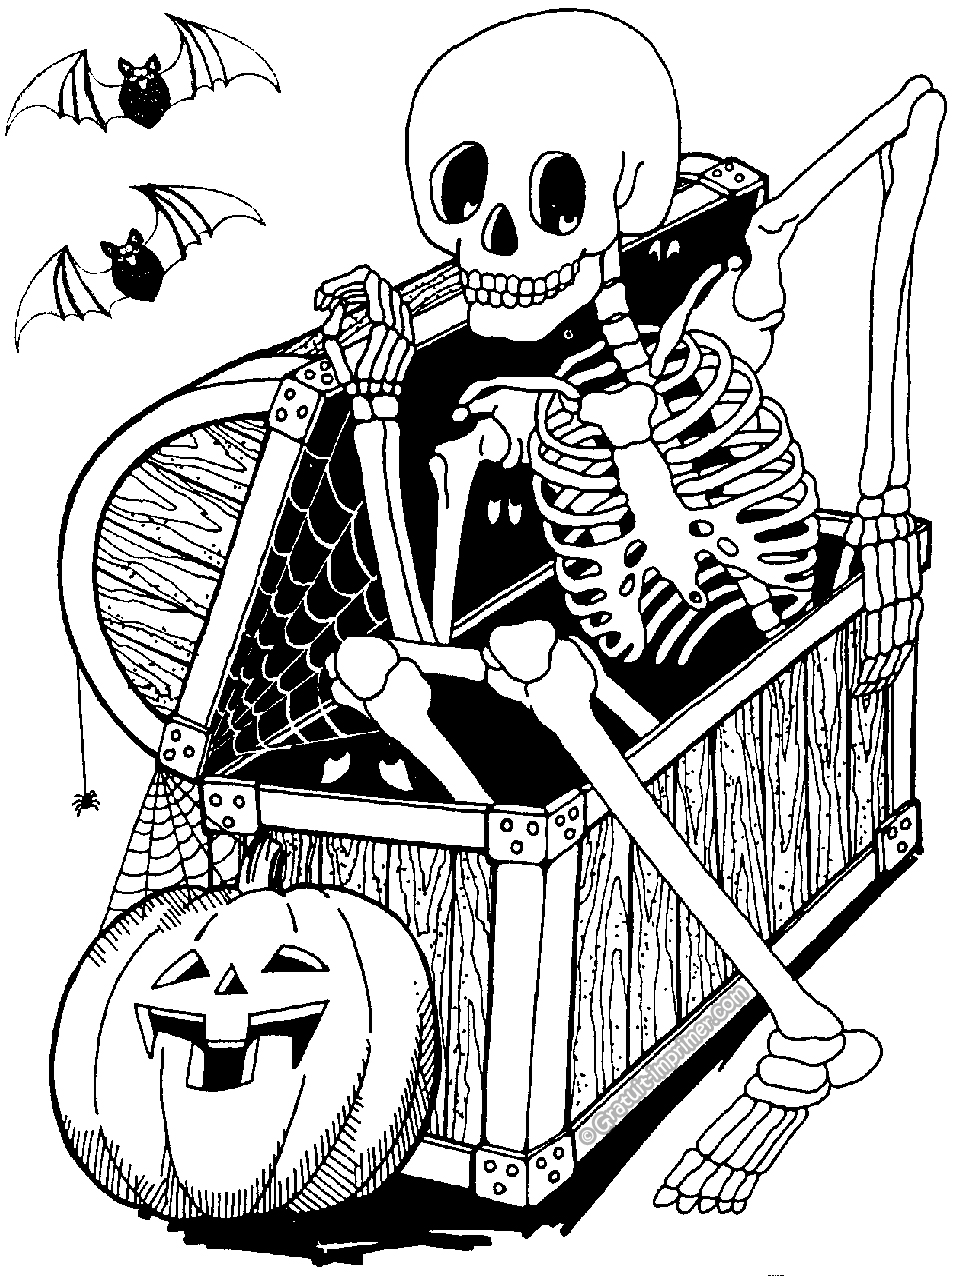 Disney Halloween Pumpkin Mickey as well Free Halloween Coloring Pages Printable as well Coloriage Halloween together with Halloween Printable blogspot moreover I0000hXLWkI18NU8. on scary halloween party costumes